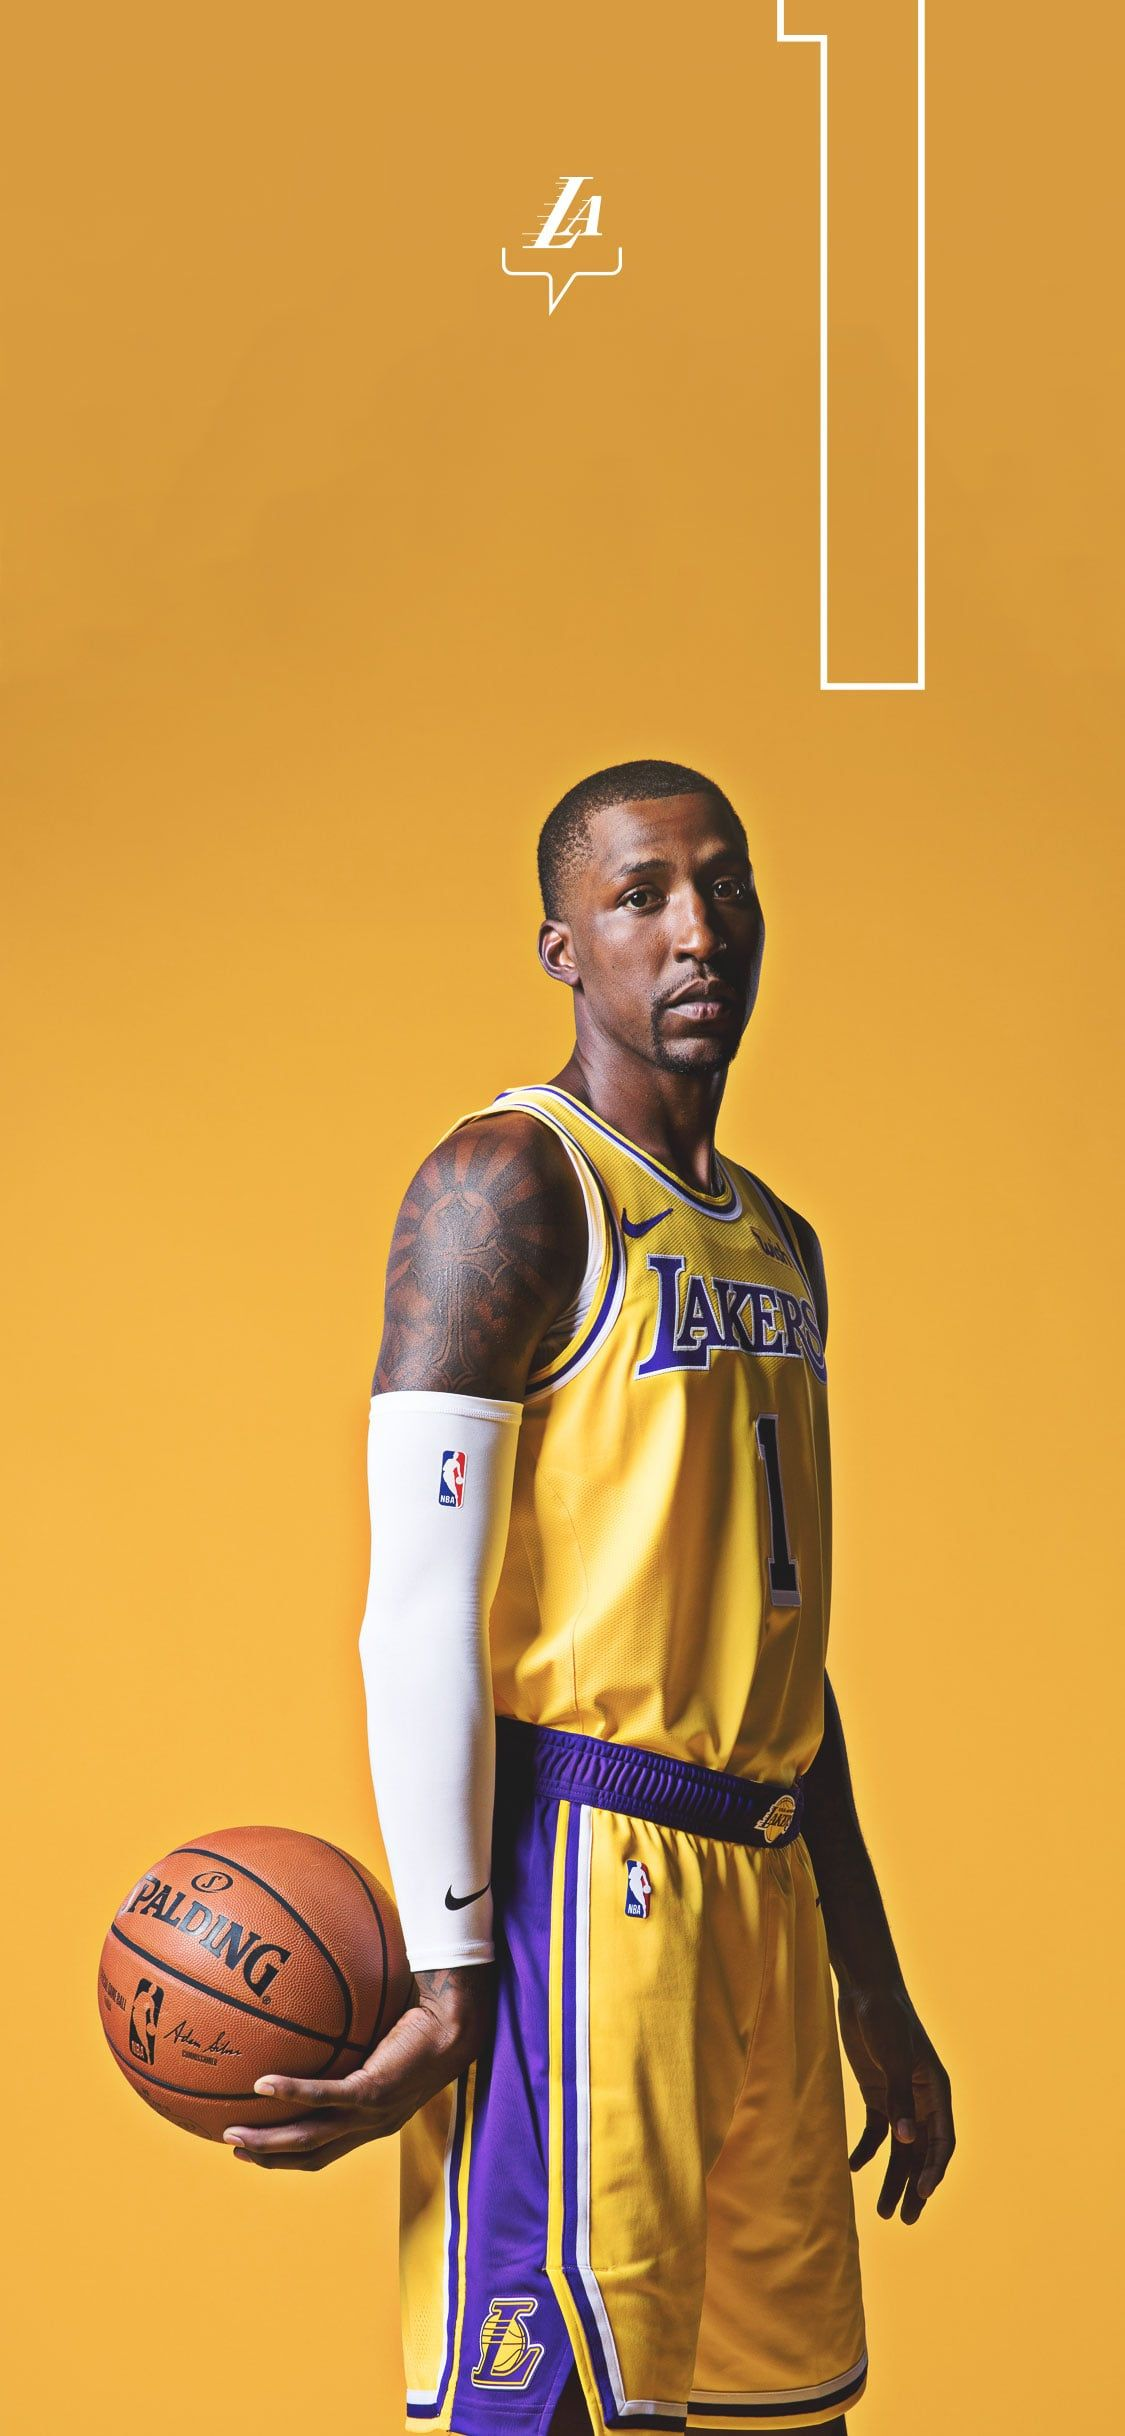 Lakers Wallpapers And Infographics In 2020 Lakers Wallpaper Los Angeles Lakers Lakers